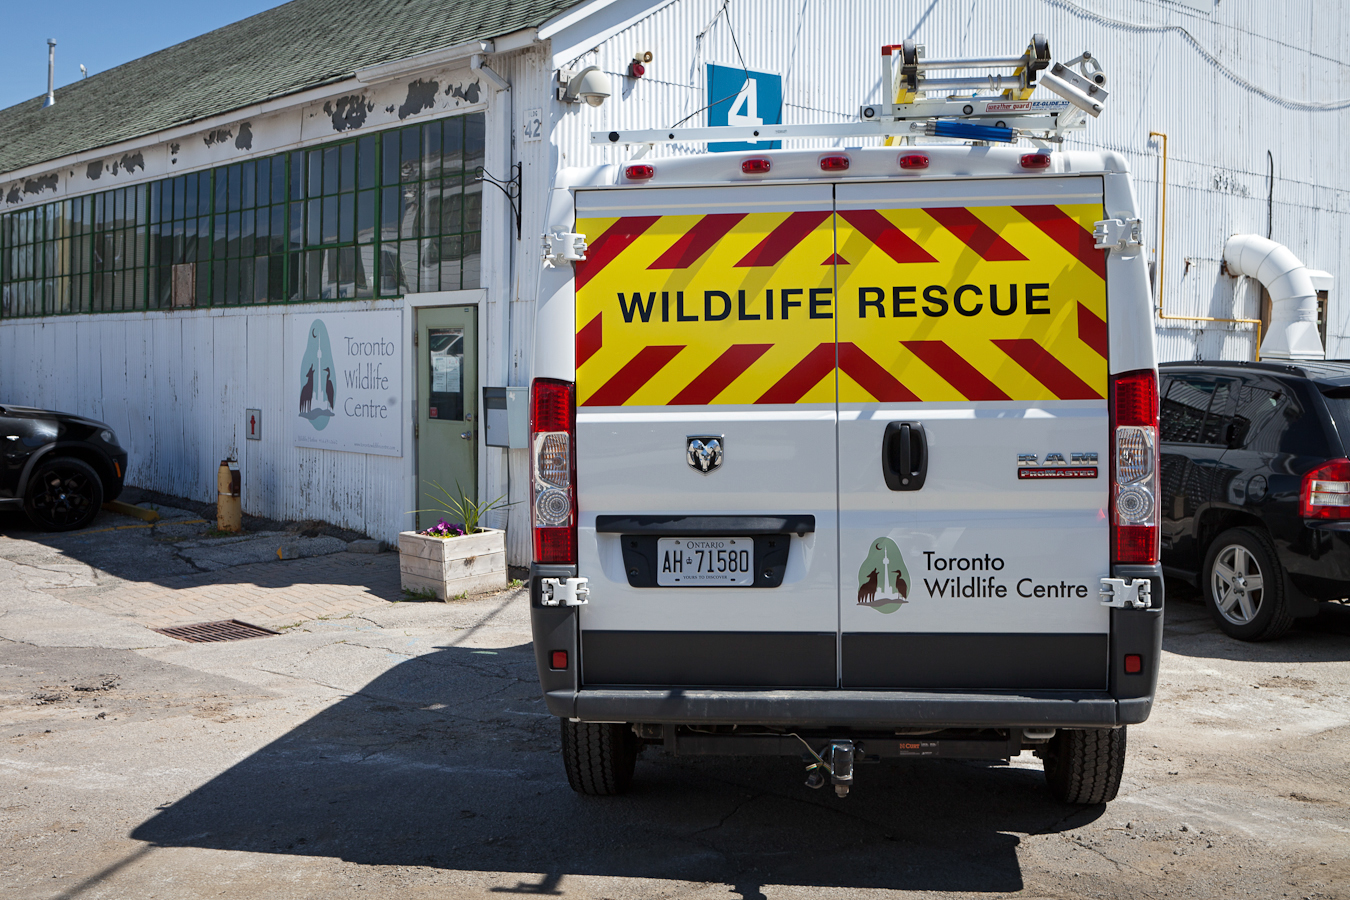 Toronto Wildlife Centre rescue team van